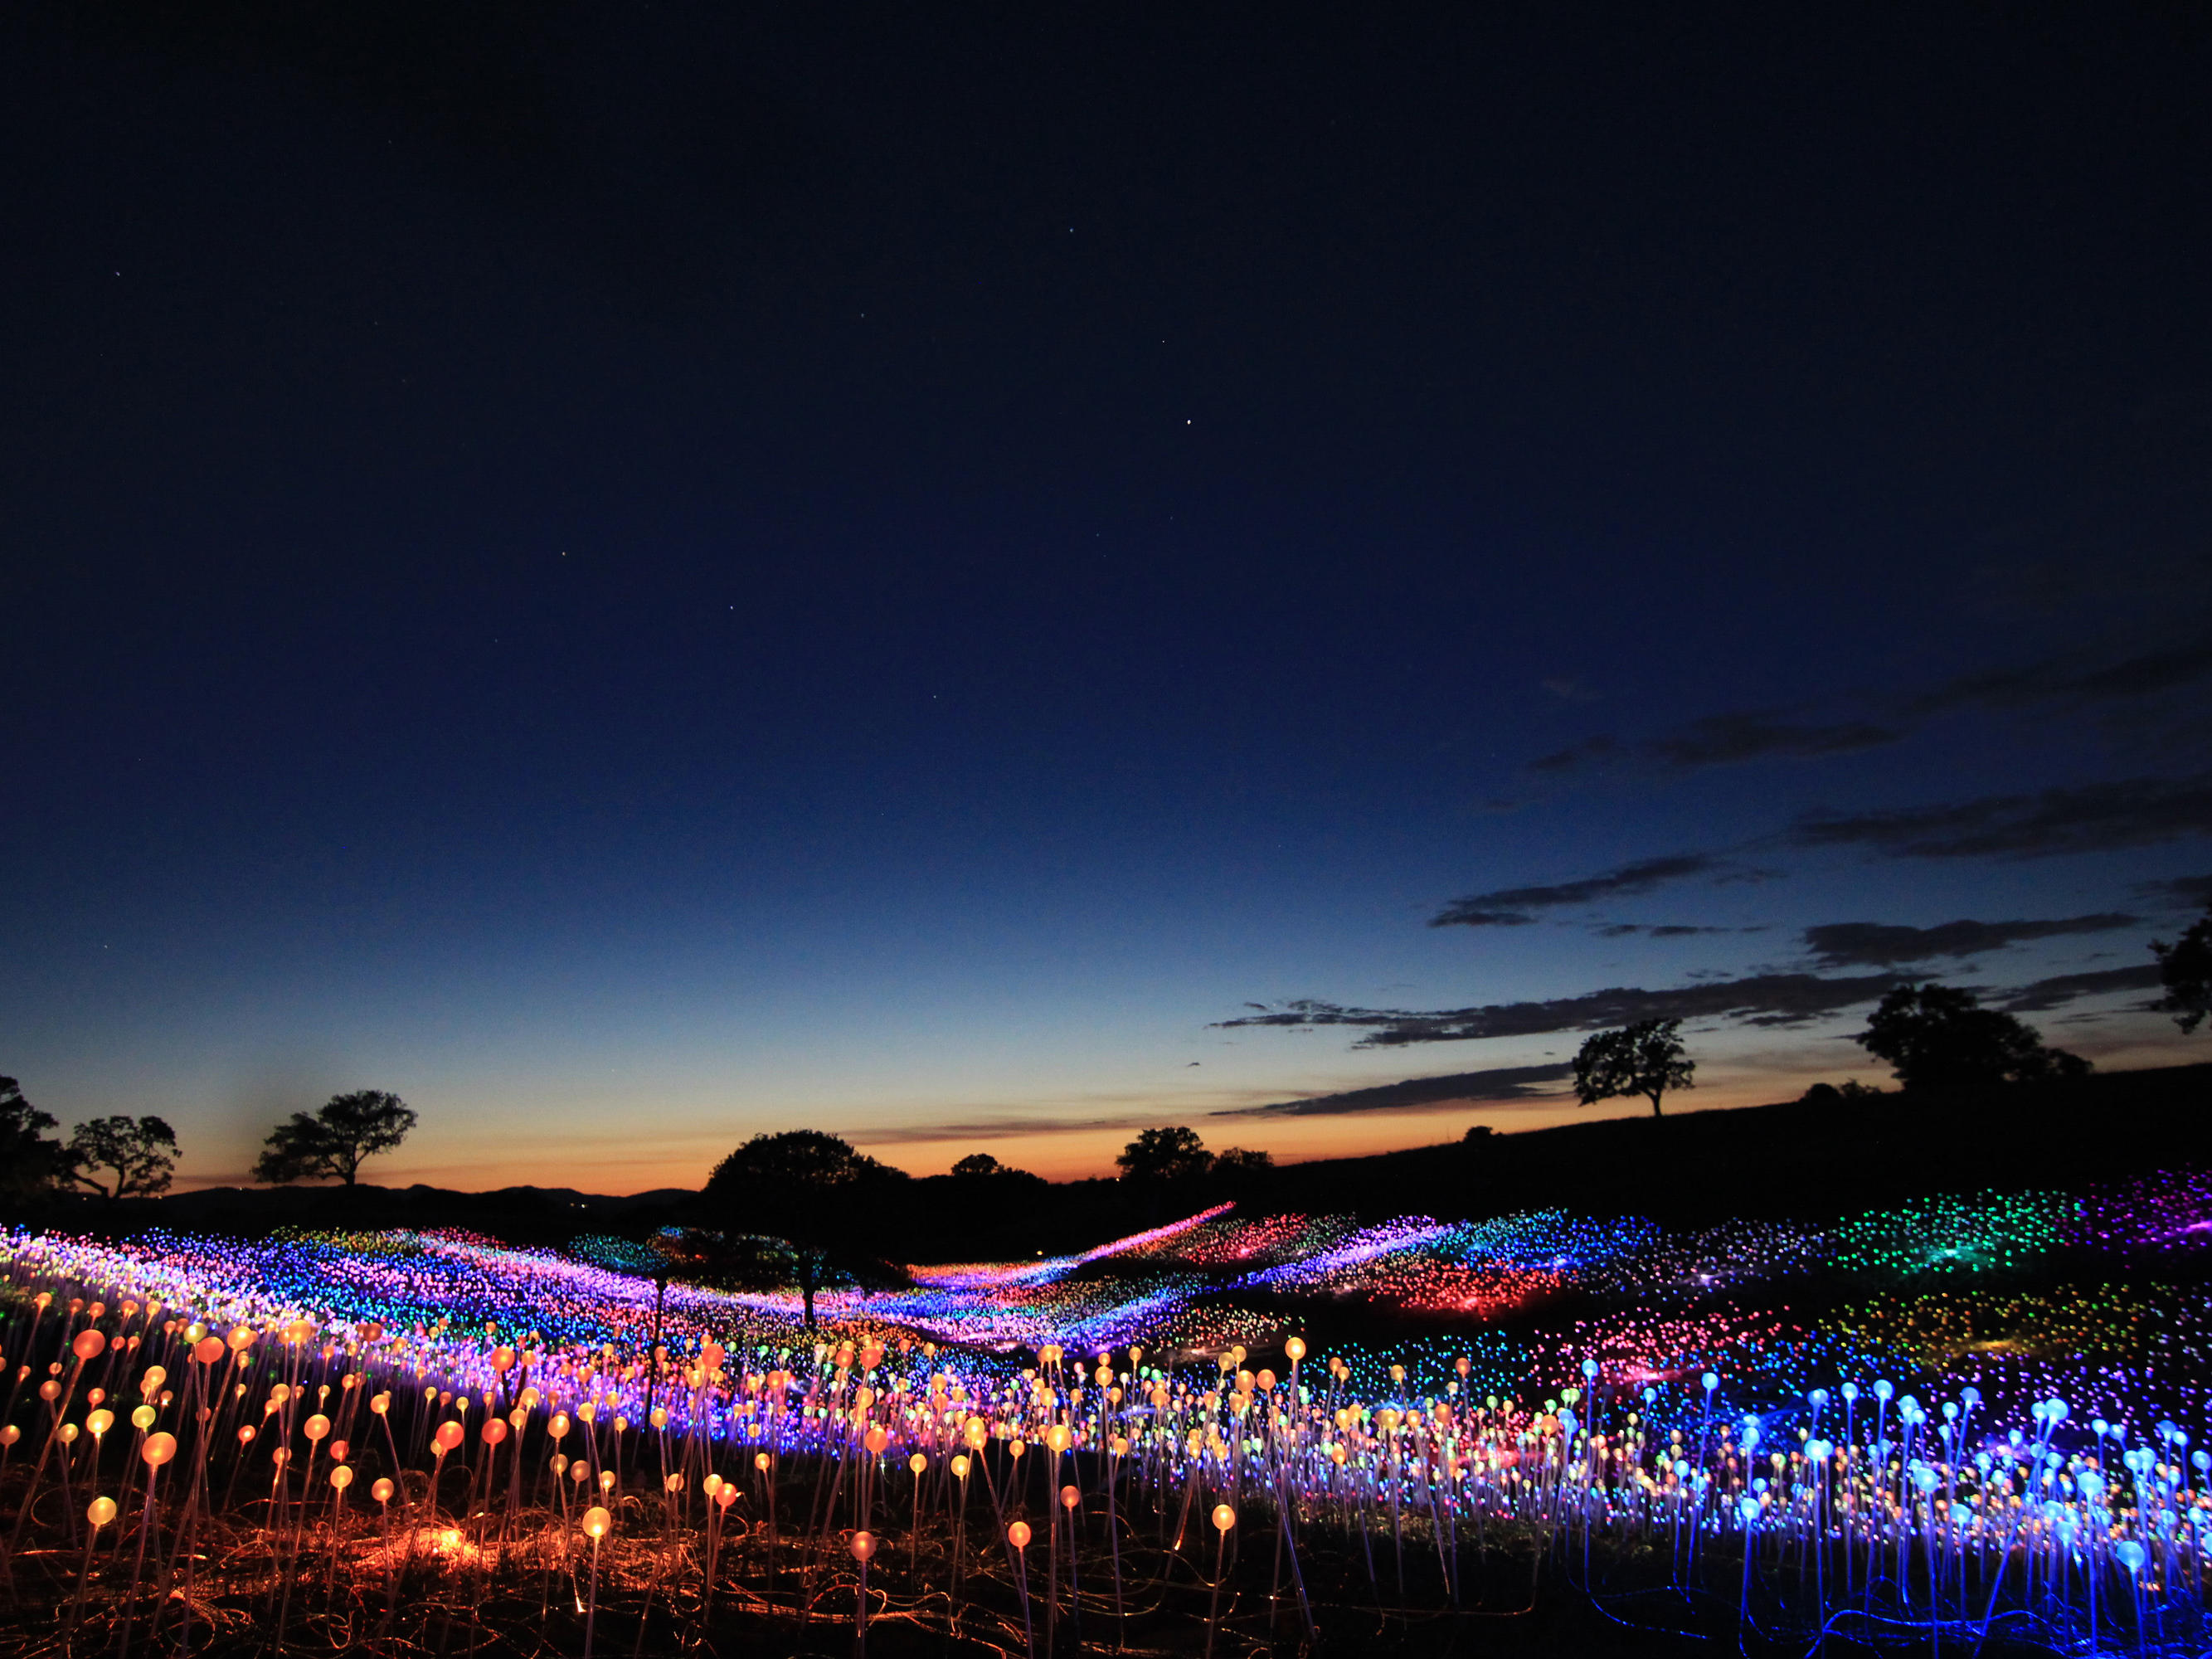 Field of Lights at Sensorio